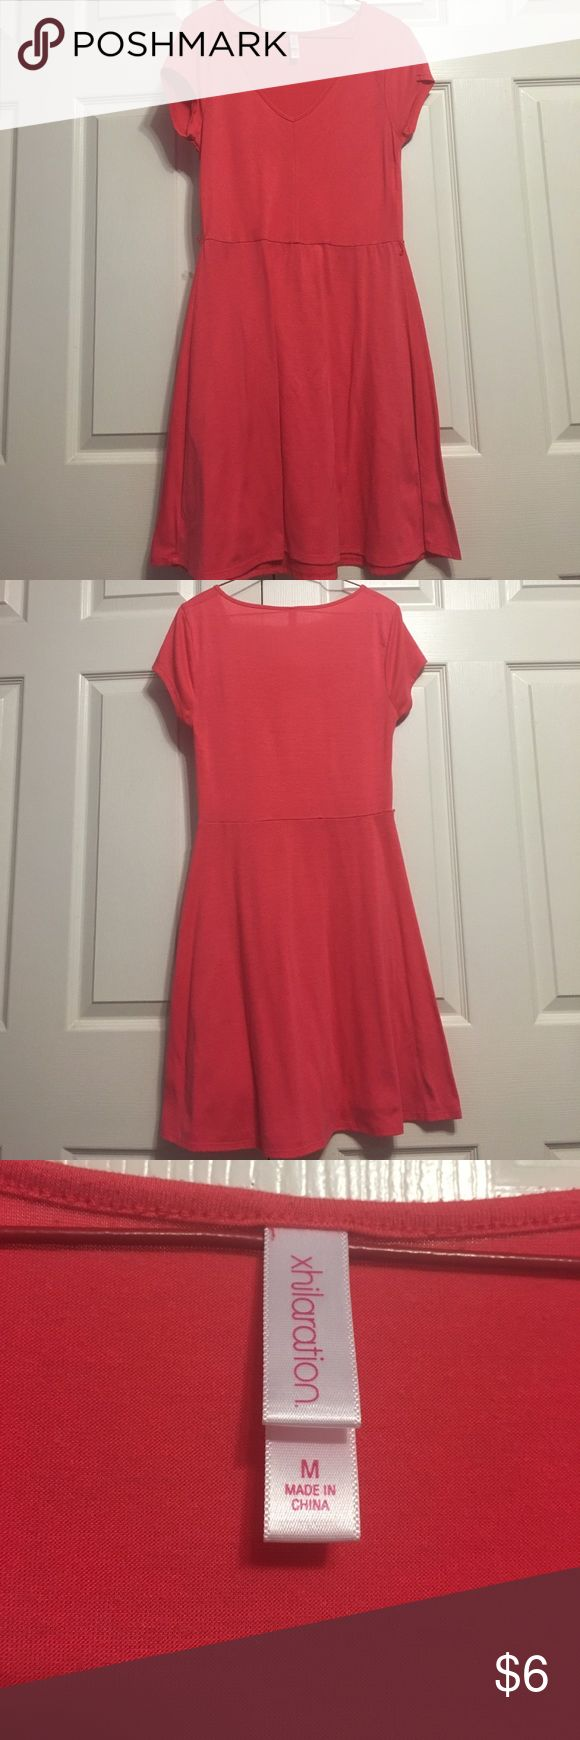 Coral Summer Dress Coral V-neck short sleeve dress. There are loops for a small belt shown in picture but does not come with belt.   Lightly worn! Xhilaration Dresses Midi